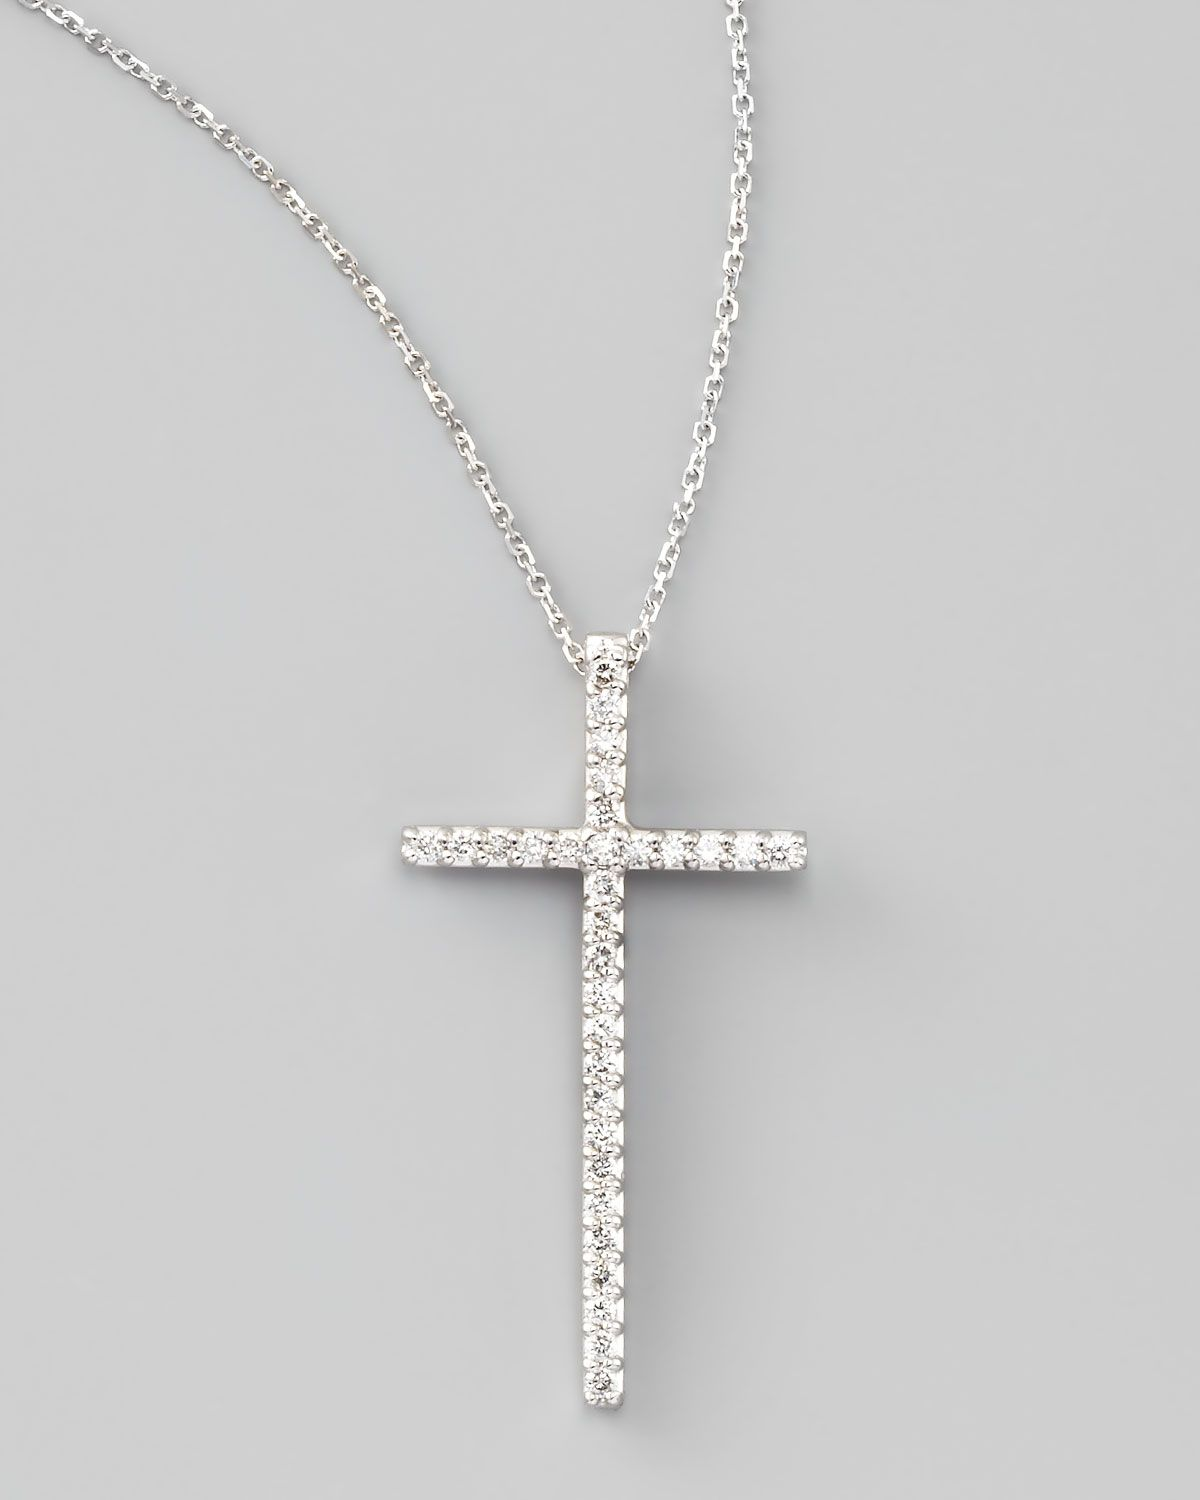 Httpharrislovekc designs large diamond cross pendant httpharrislovekc designs large diamond mozeypictures Image collections